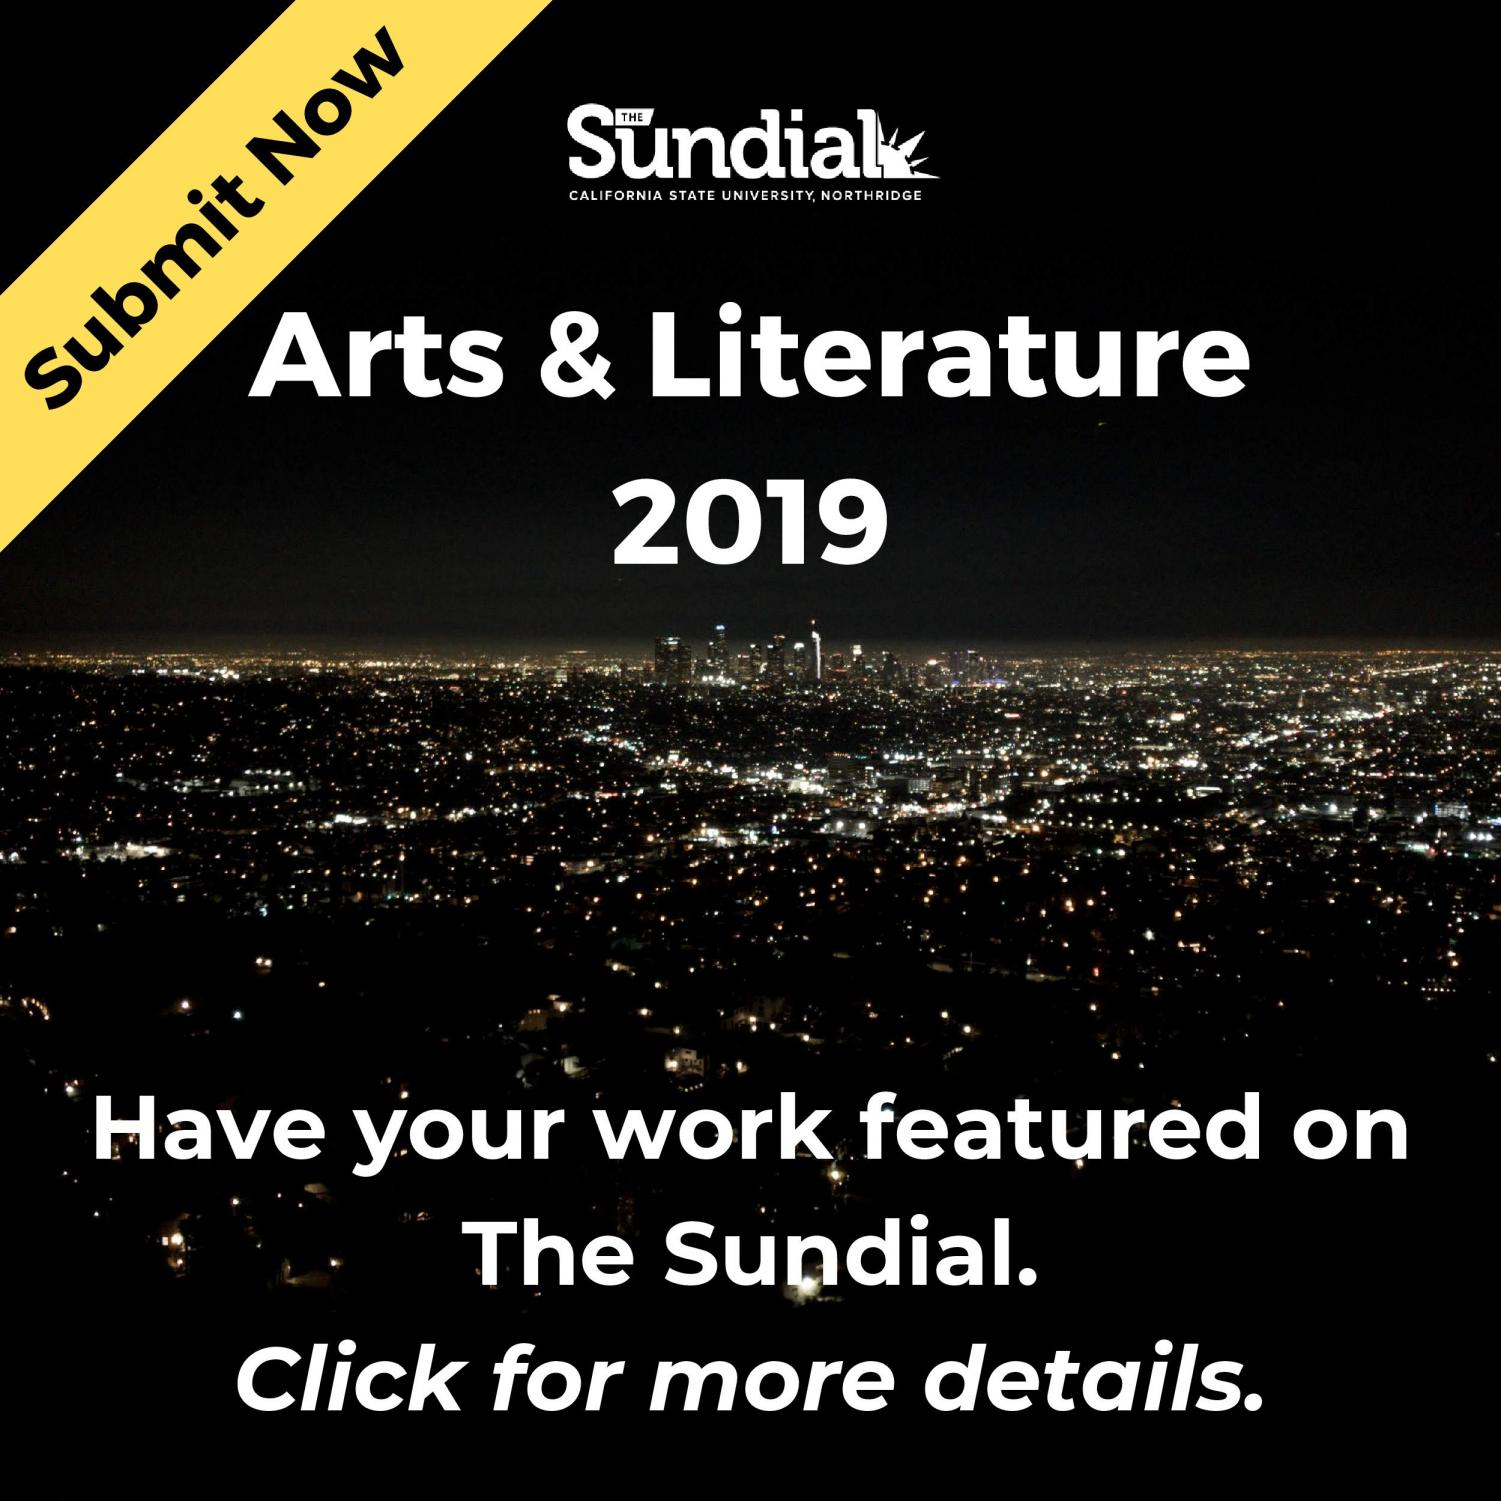 arts & lit call for submit 2019